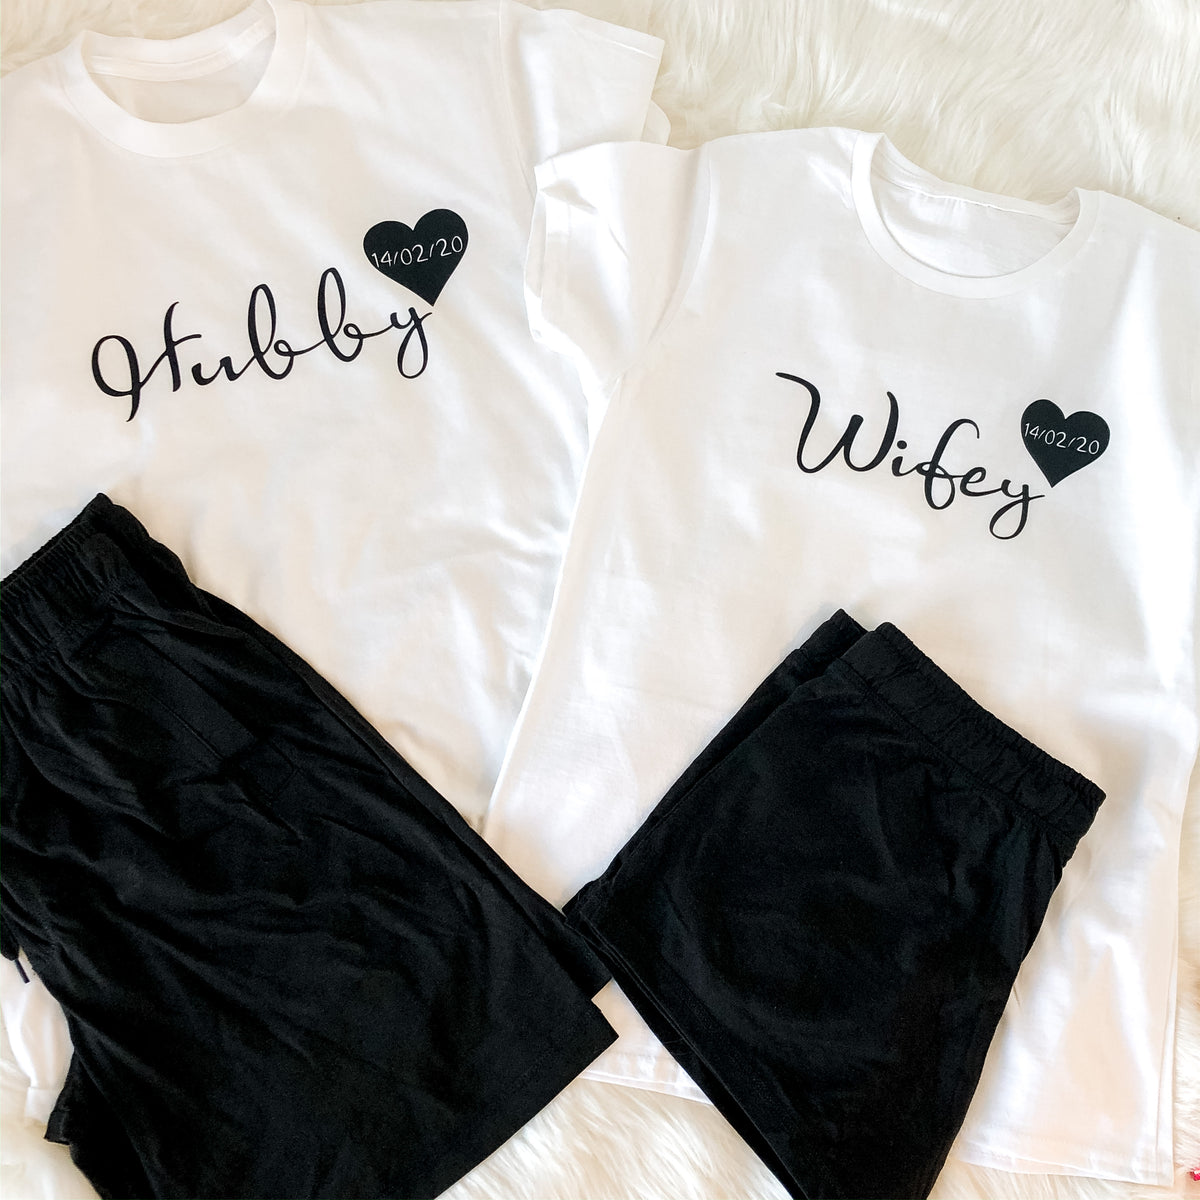 Hubby and Wifey matching pyjamas in black The Bespoke Wedding Gift Company